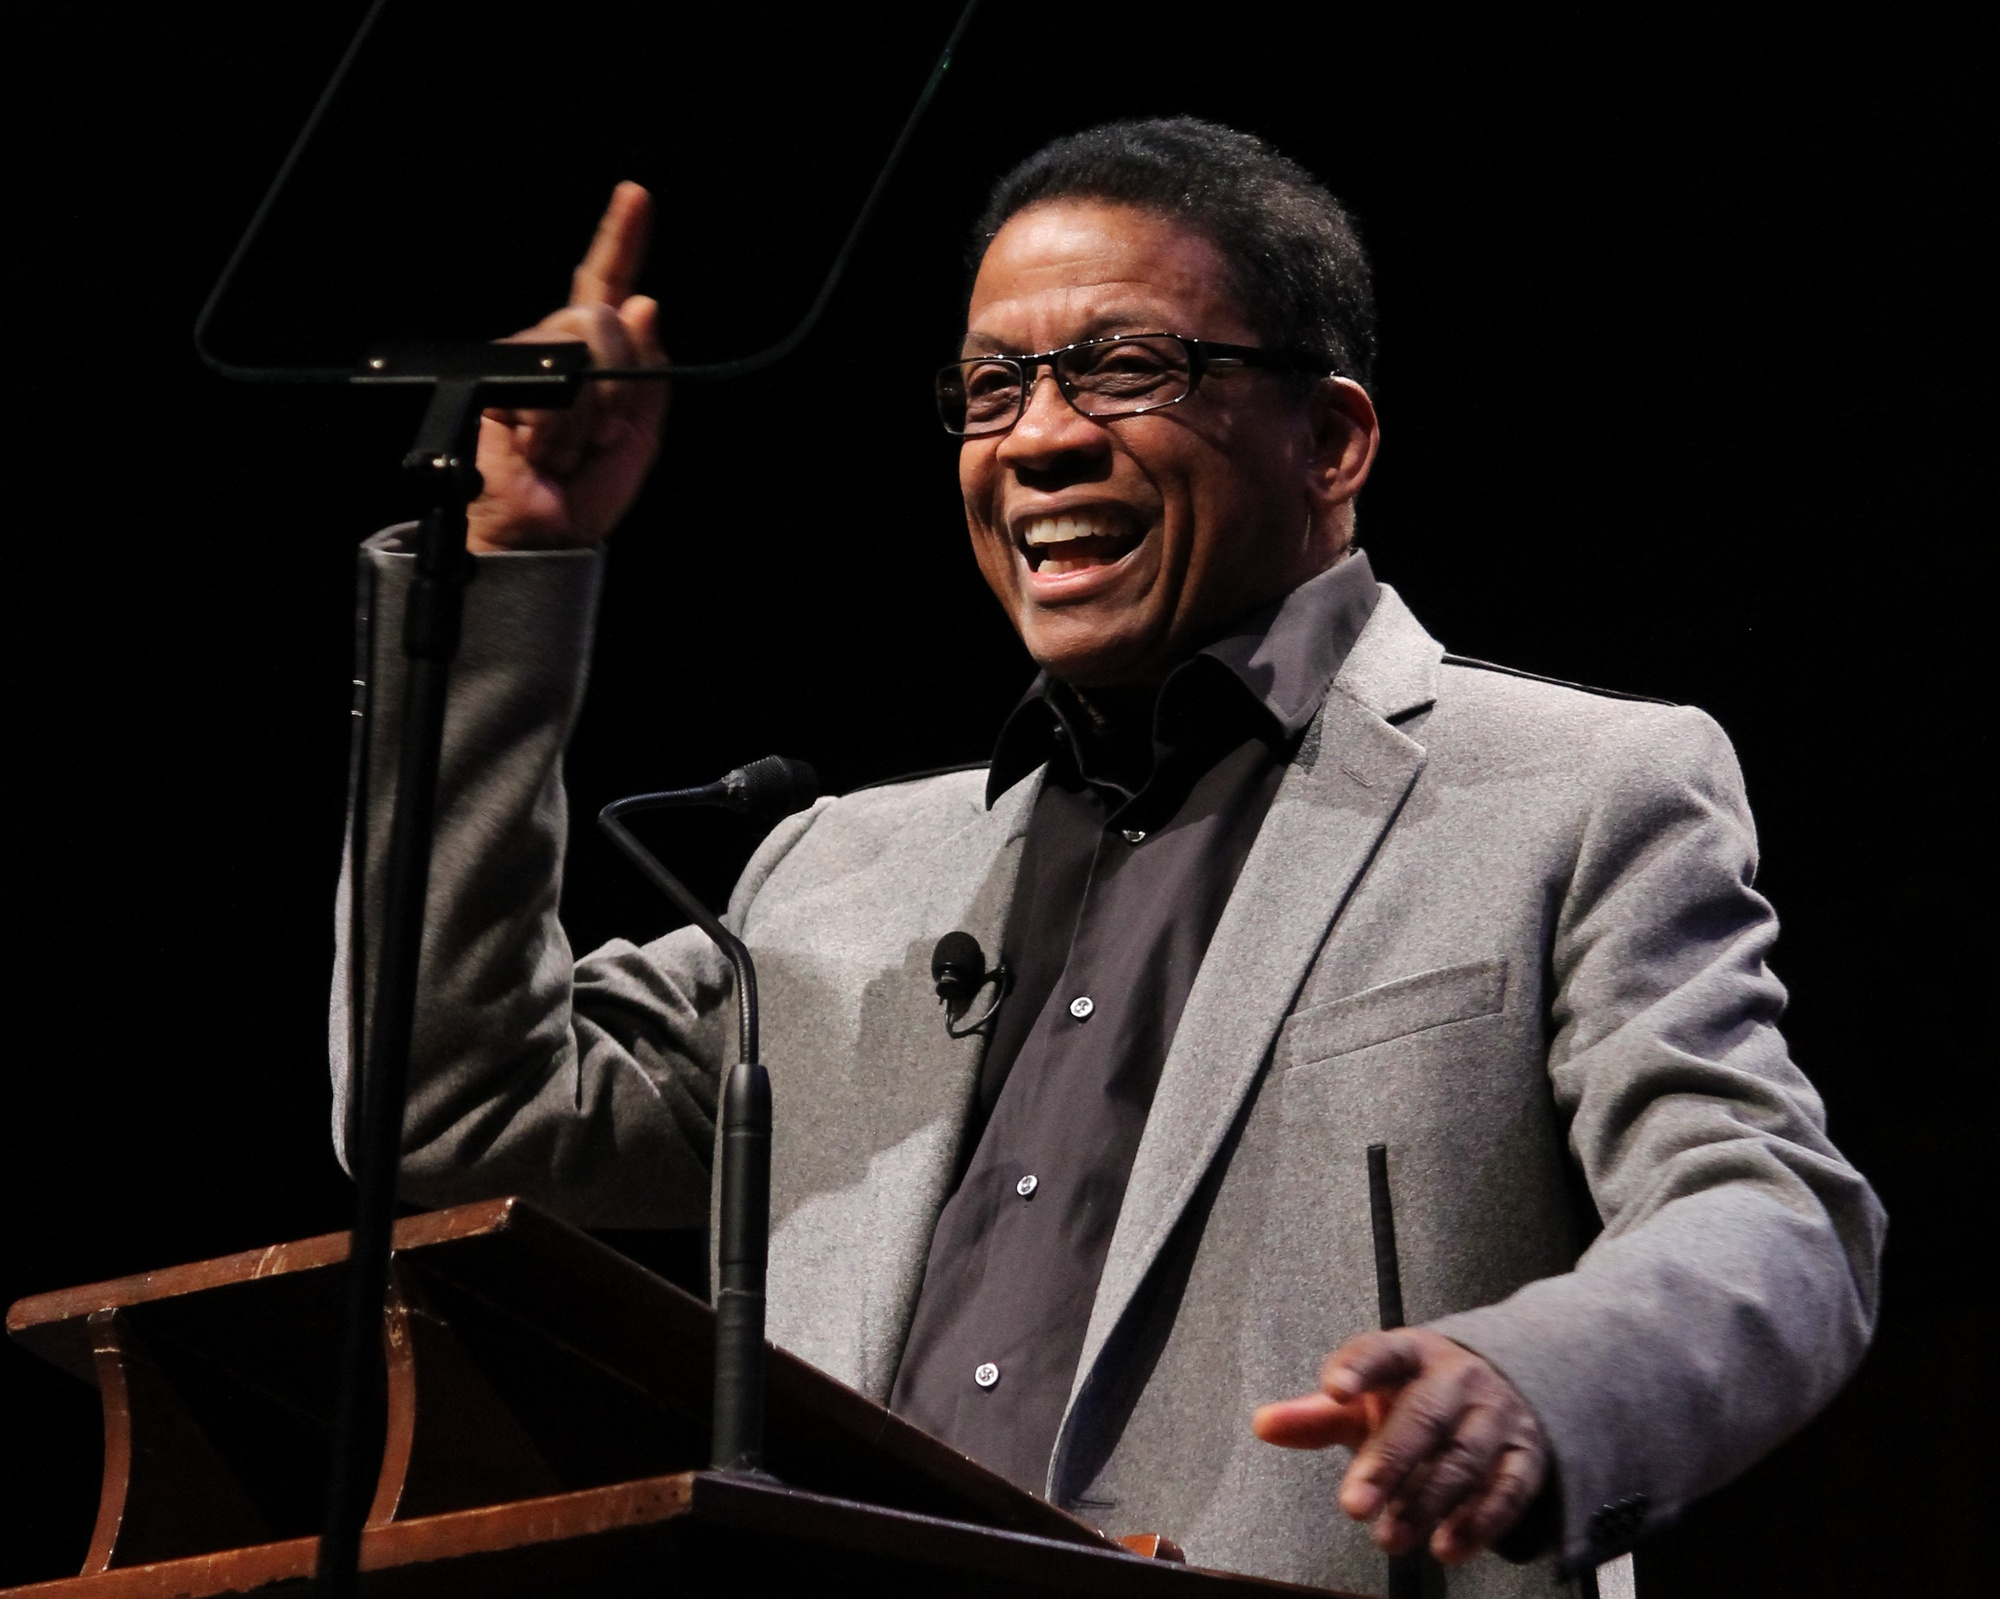 Herbie Hancock, jazz pianist and keyboardist, speaks about melding music and technology at the fourth lecture in the Norton Lecture series Monday afternoon in Sanders Theatre.